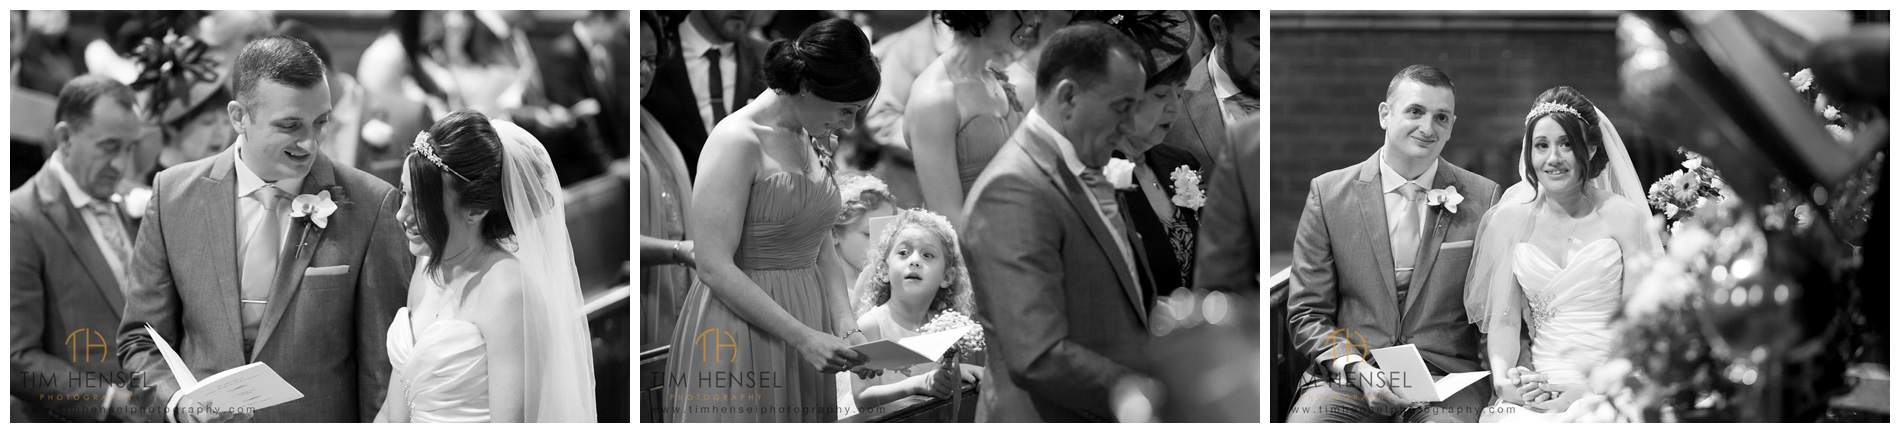 Documentary photographs capturing the wedding as it happens